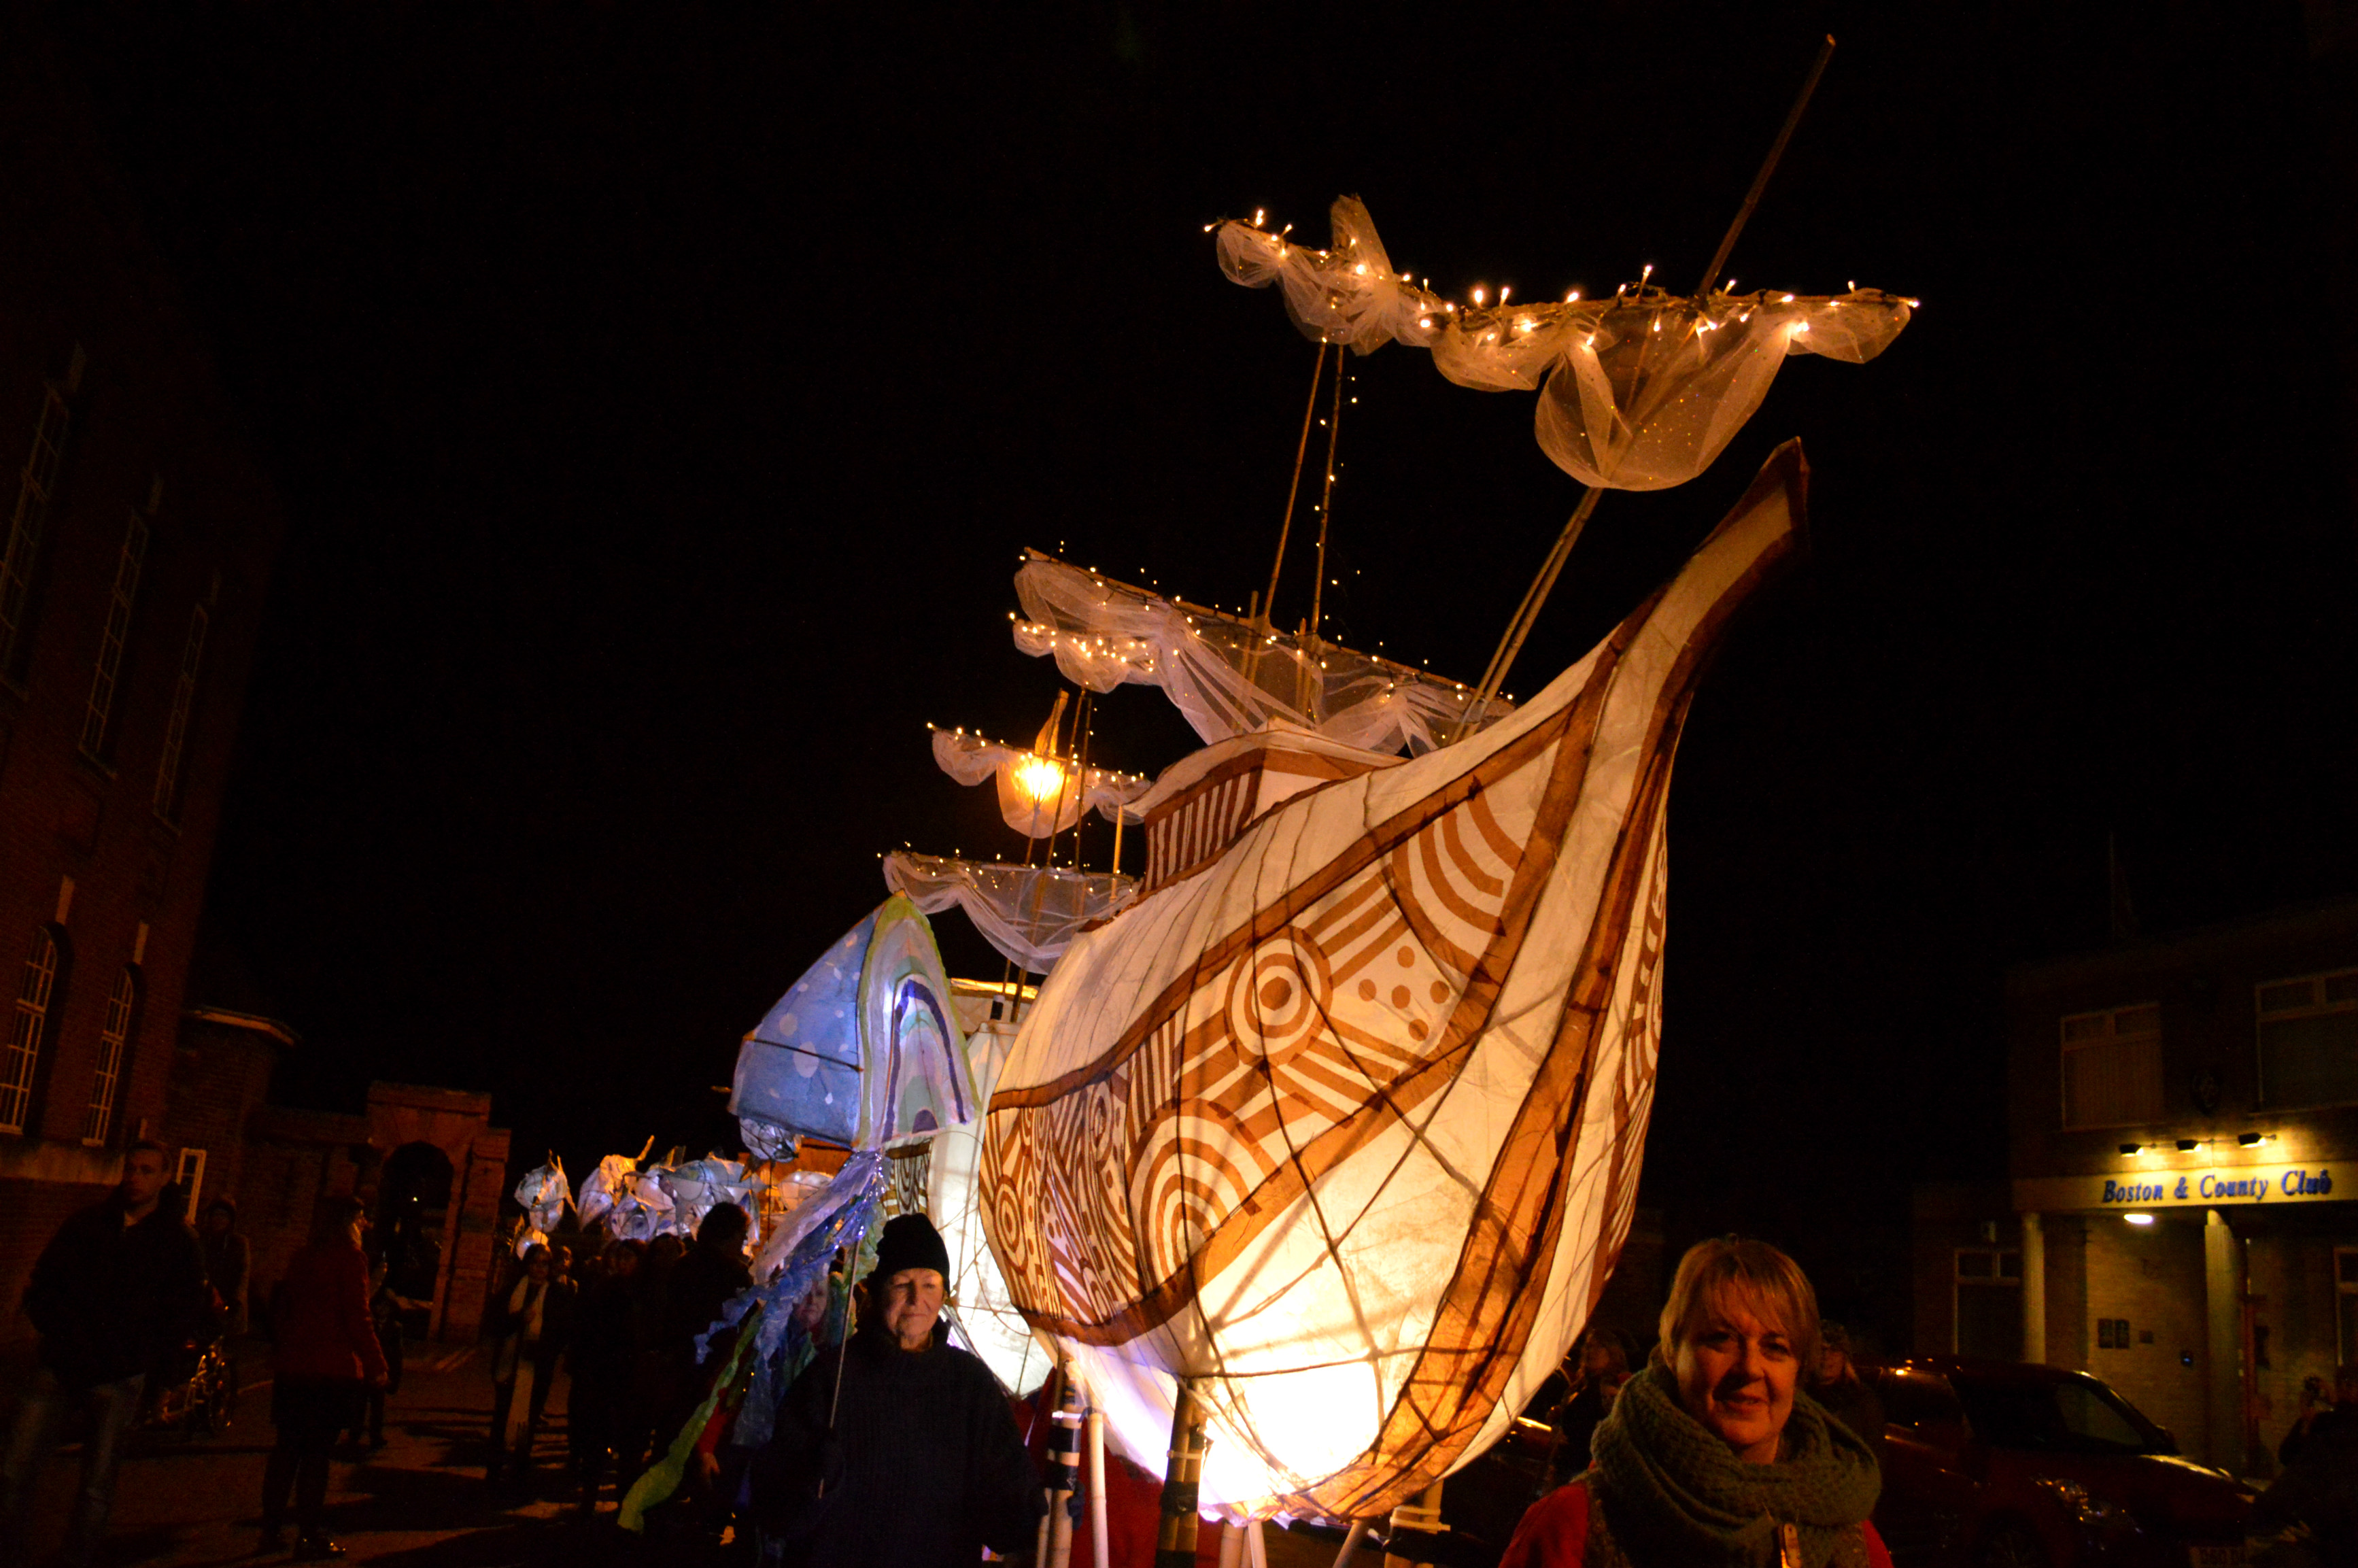 Front of Mayflower ship. Mayflower 400 lantern parade